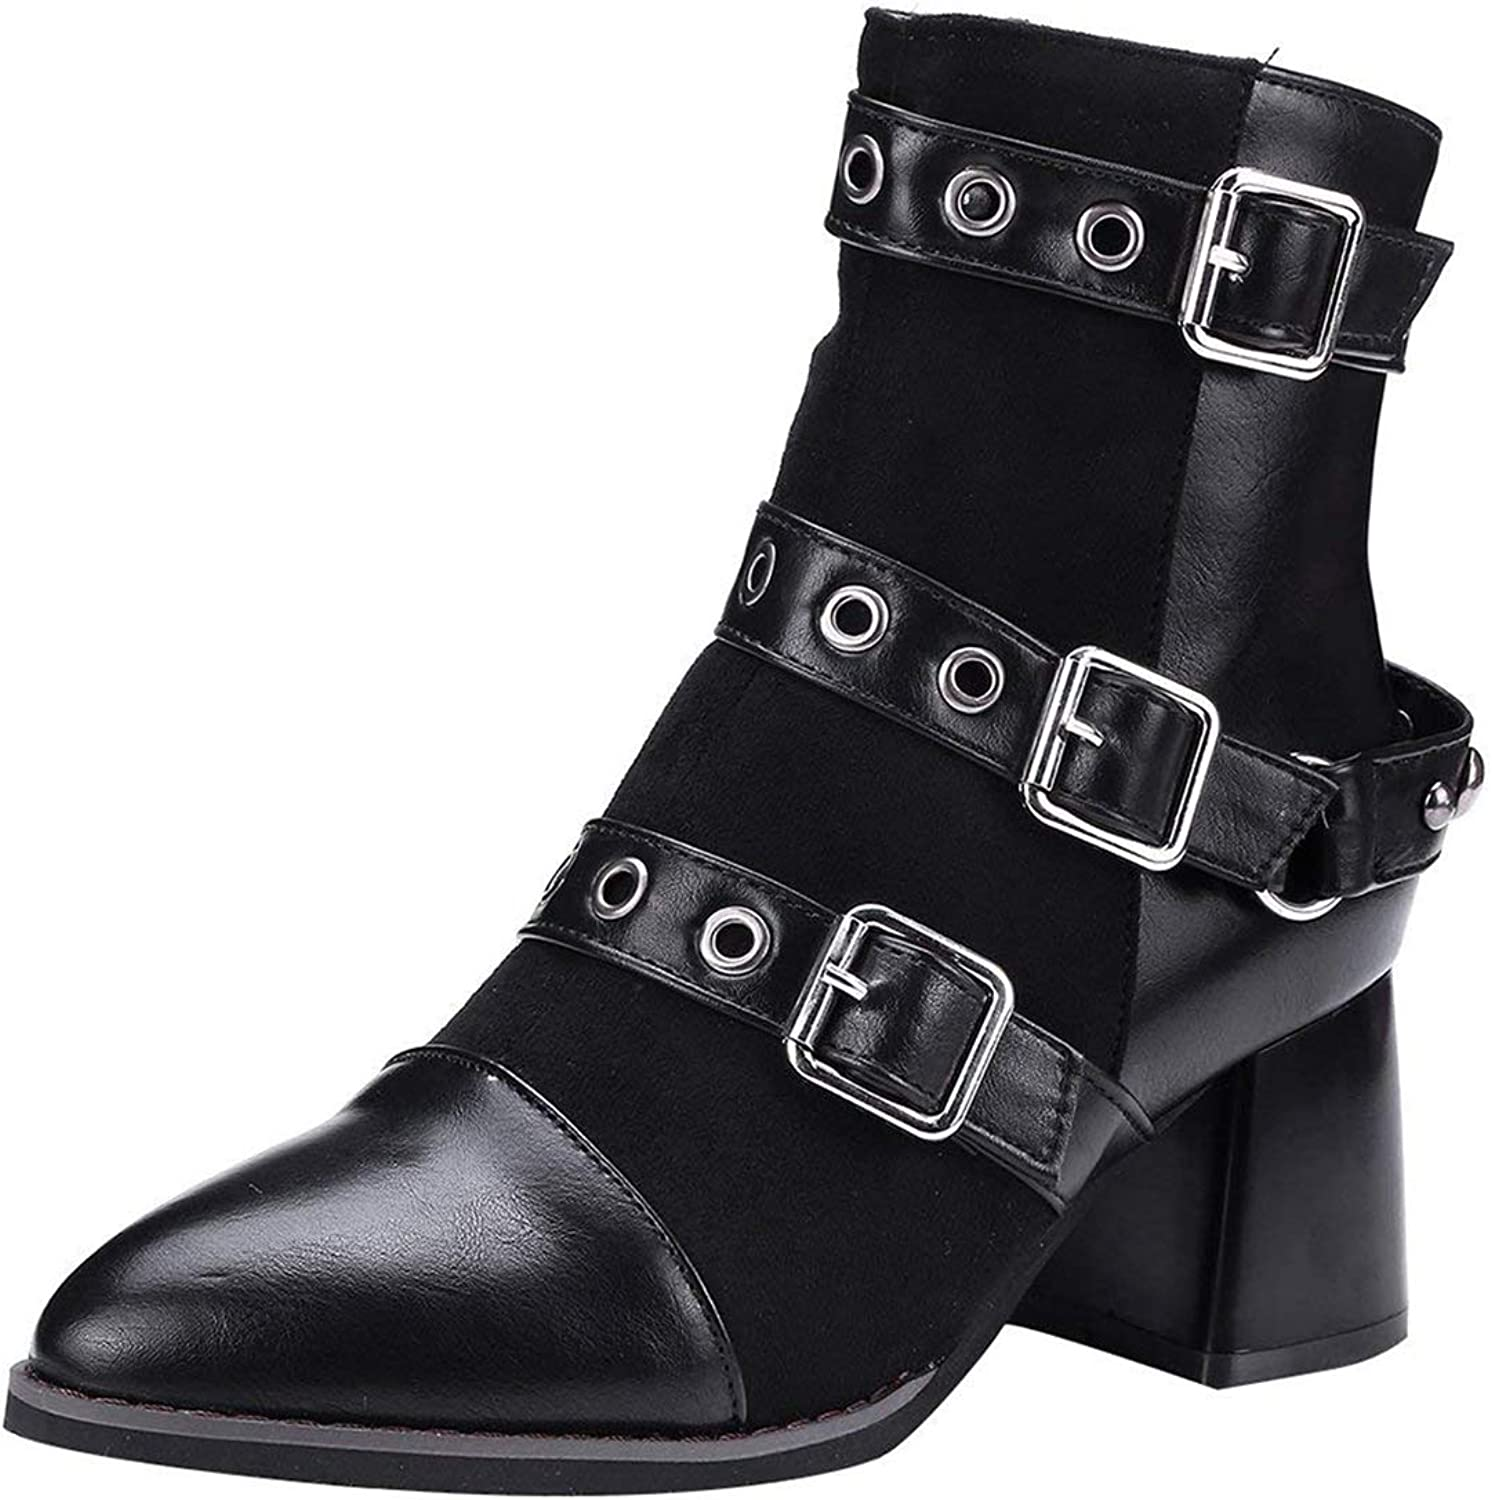 Vitalo Womens Mid Block Heel Pointed Toe Ankle Boots Zip Up Buckles Autumn Winter shoes